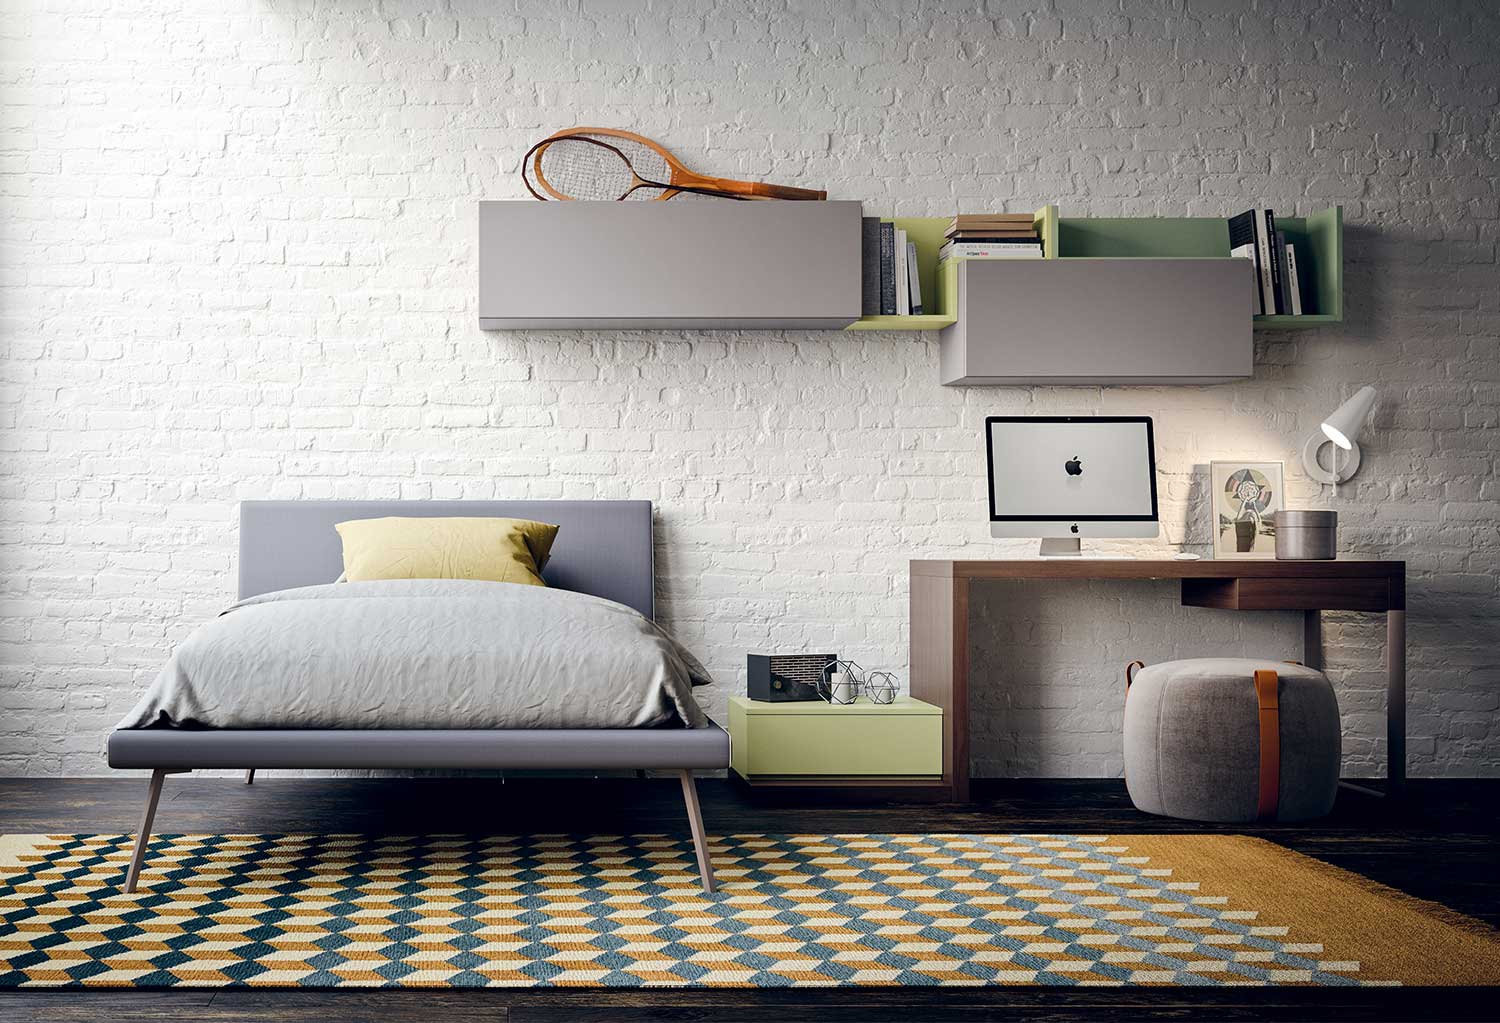 Bed and study area are placed next to each other, with the bedside table integrated in the desk